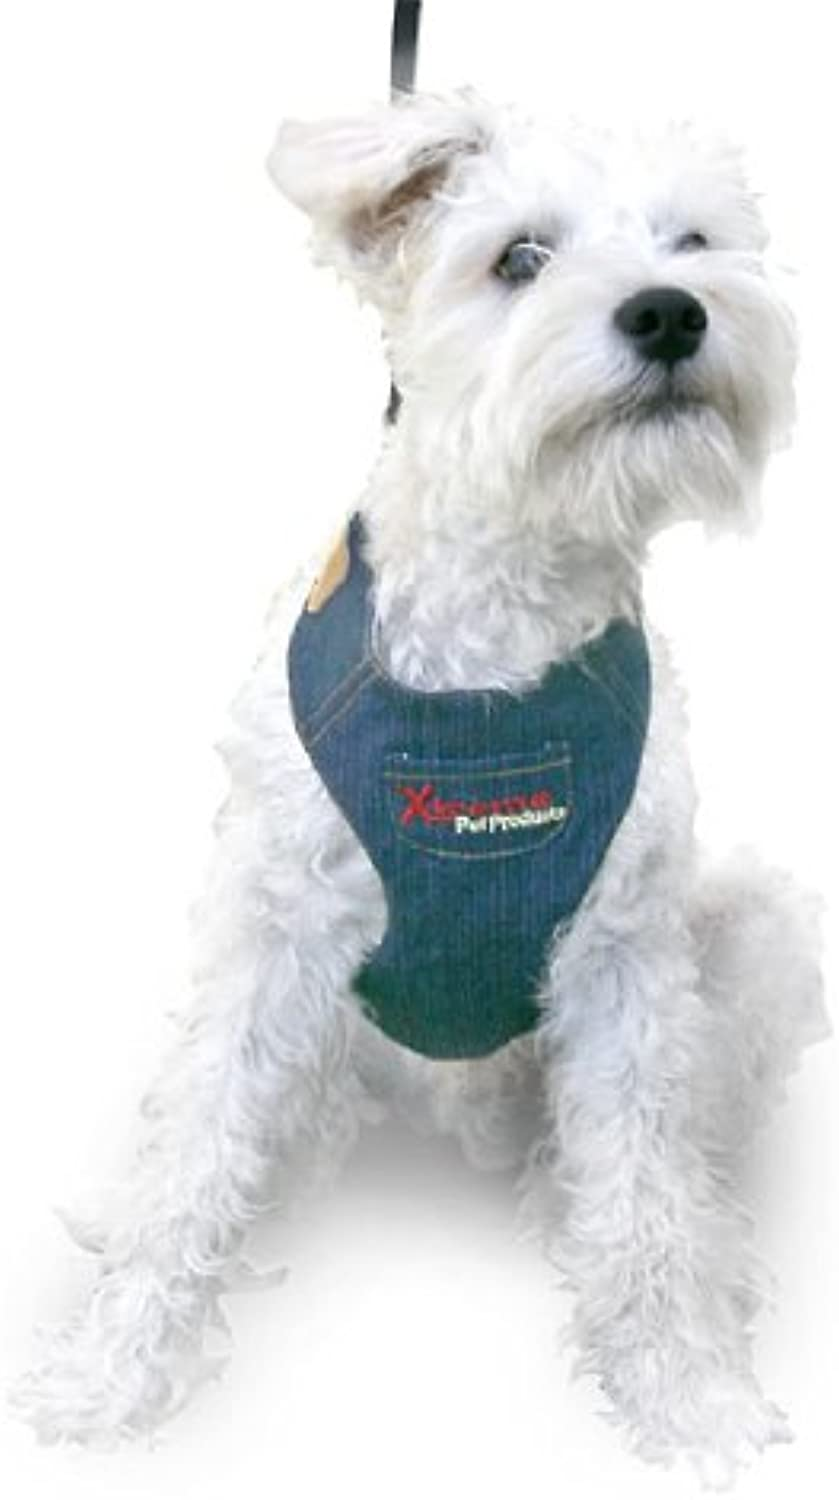 Comfort Harness Adjustable with an Ergonomic fit to Allow for Maximum Mobility  for Dogs 610 lbs  no Better Harness Available for Your Buddy  Jean